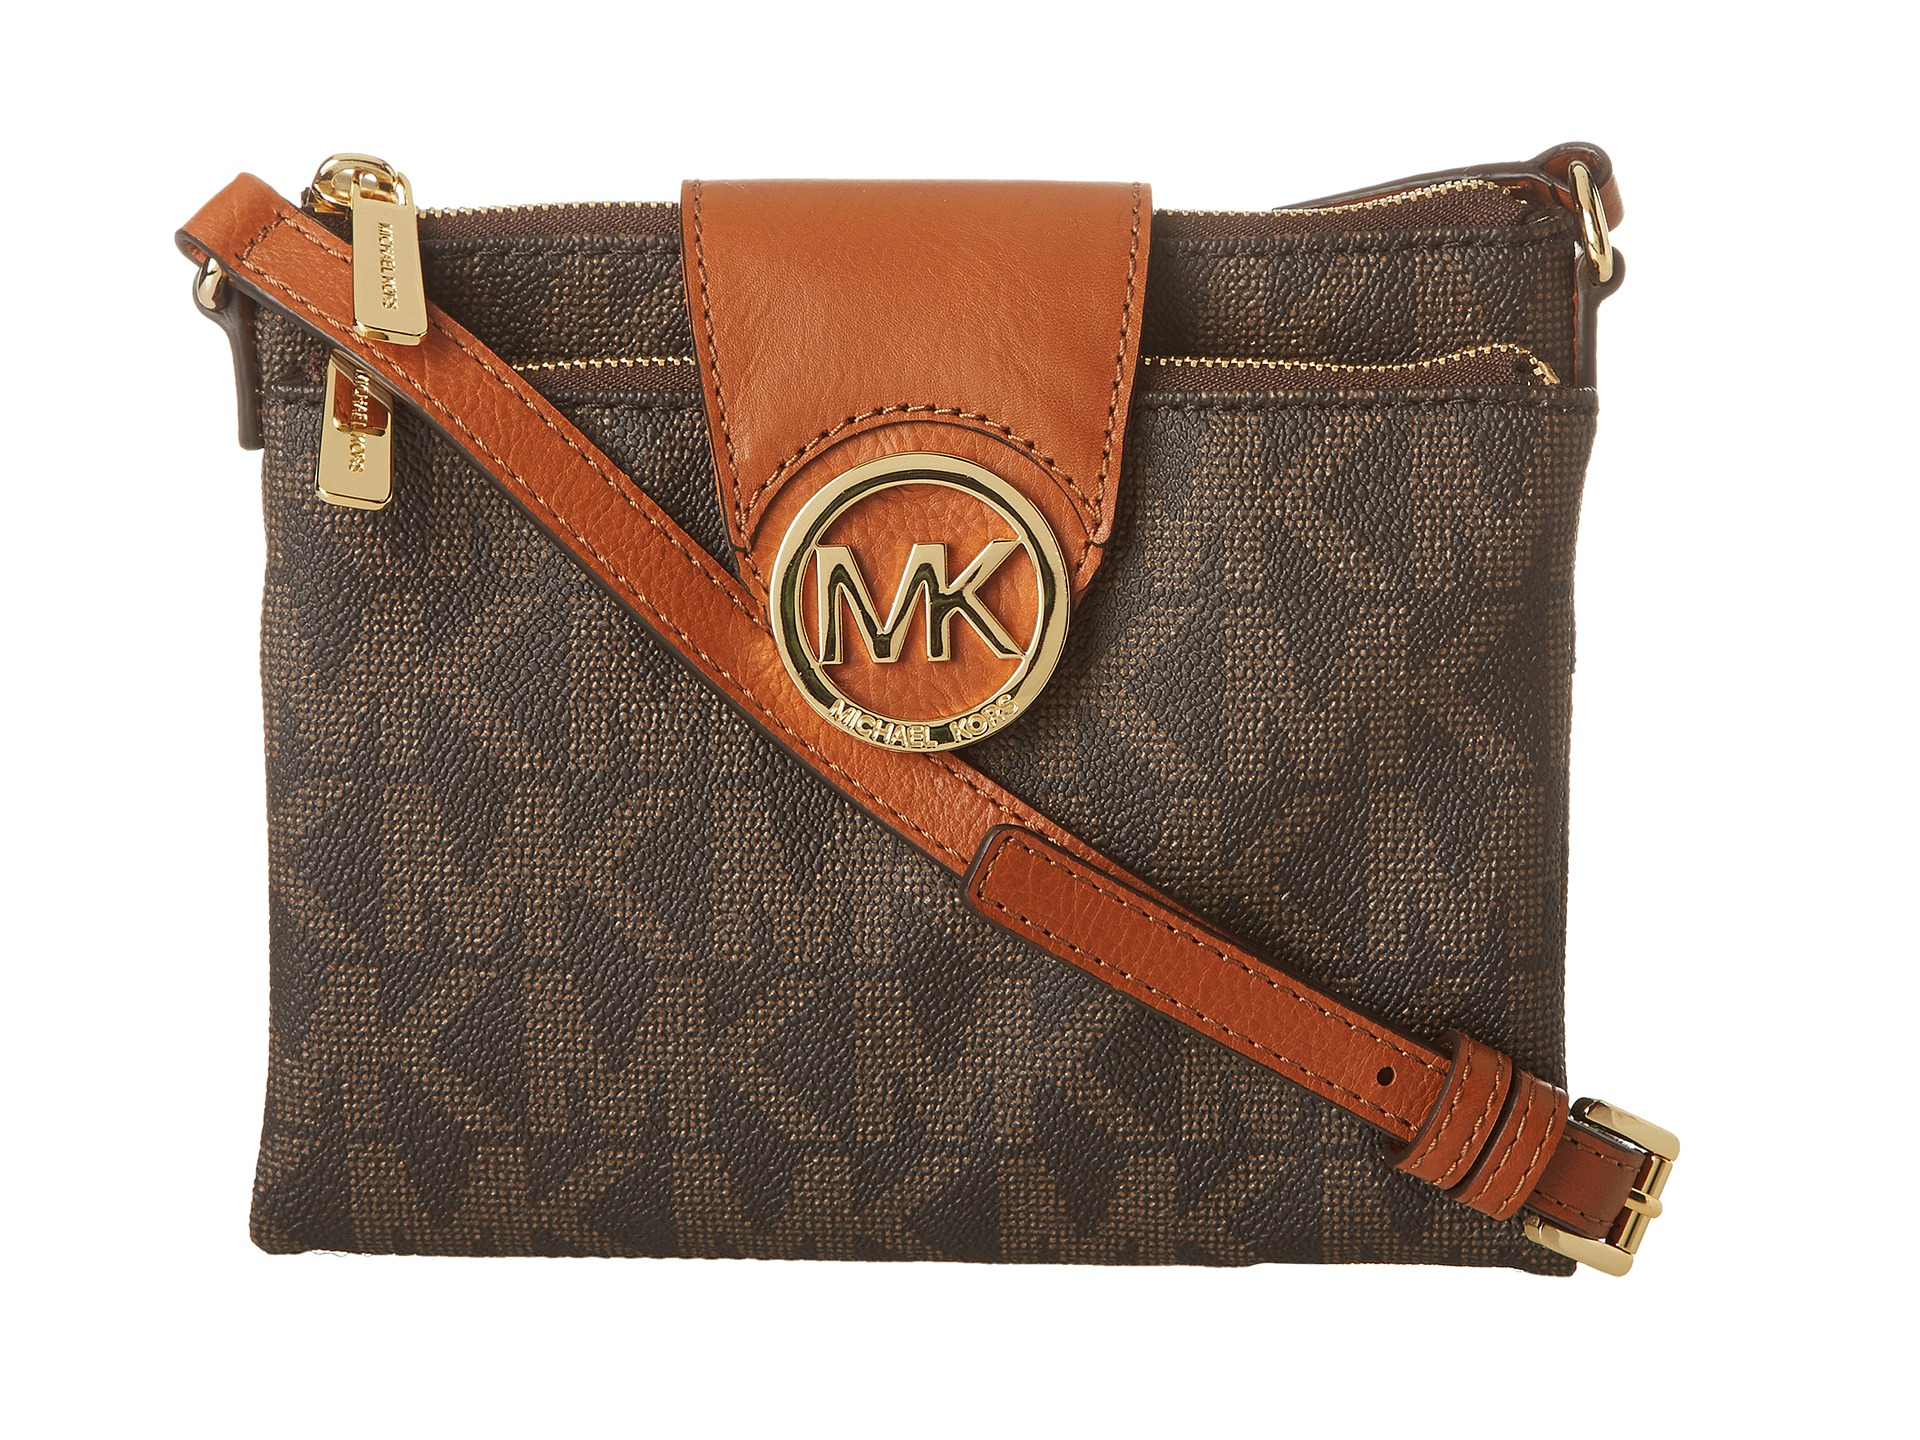 38e42598cc43 Gallery. Previously sold at: Zappos · Women's Michael By Michael Kors Fulton